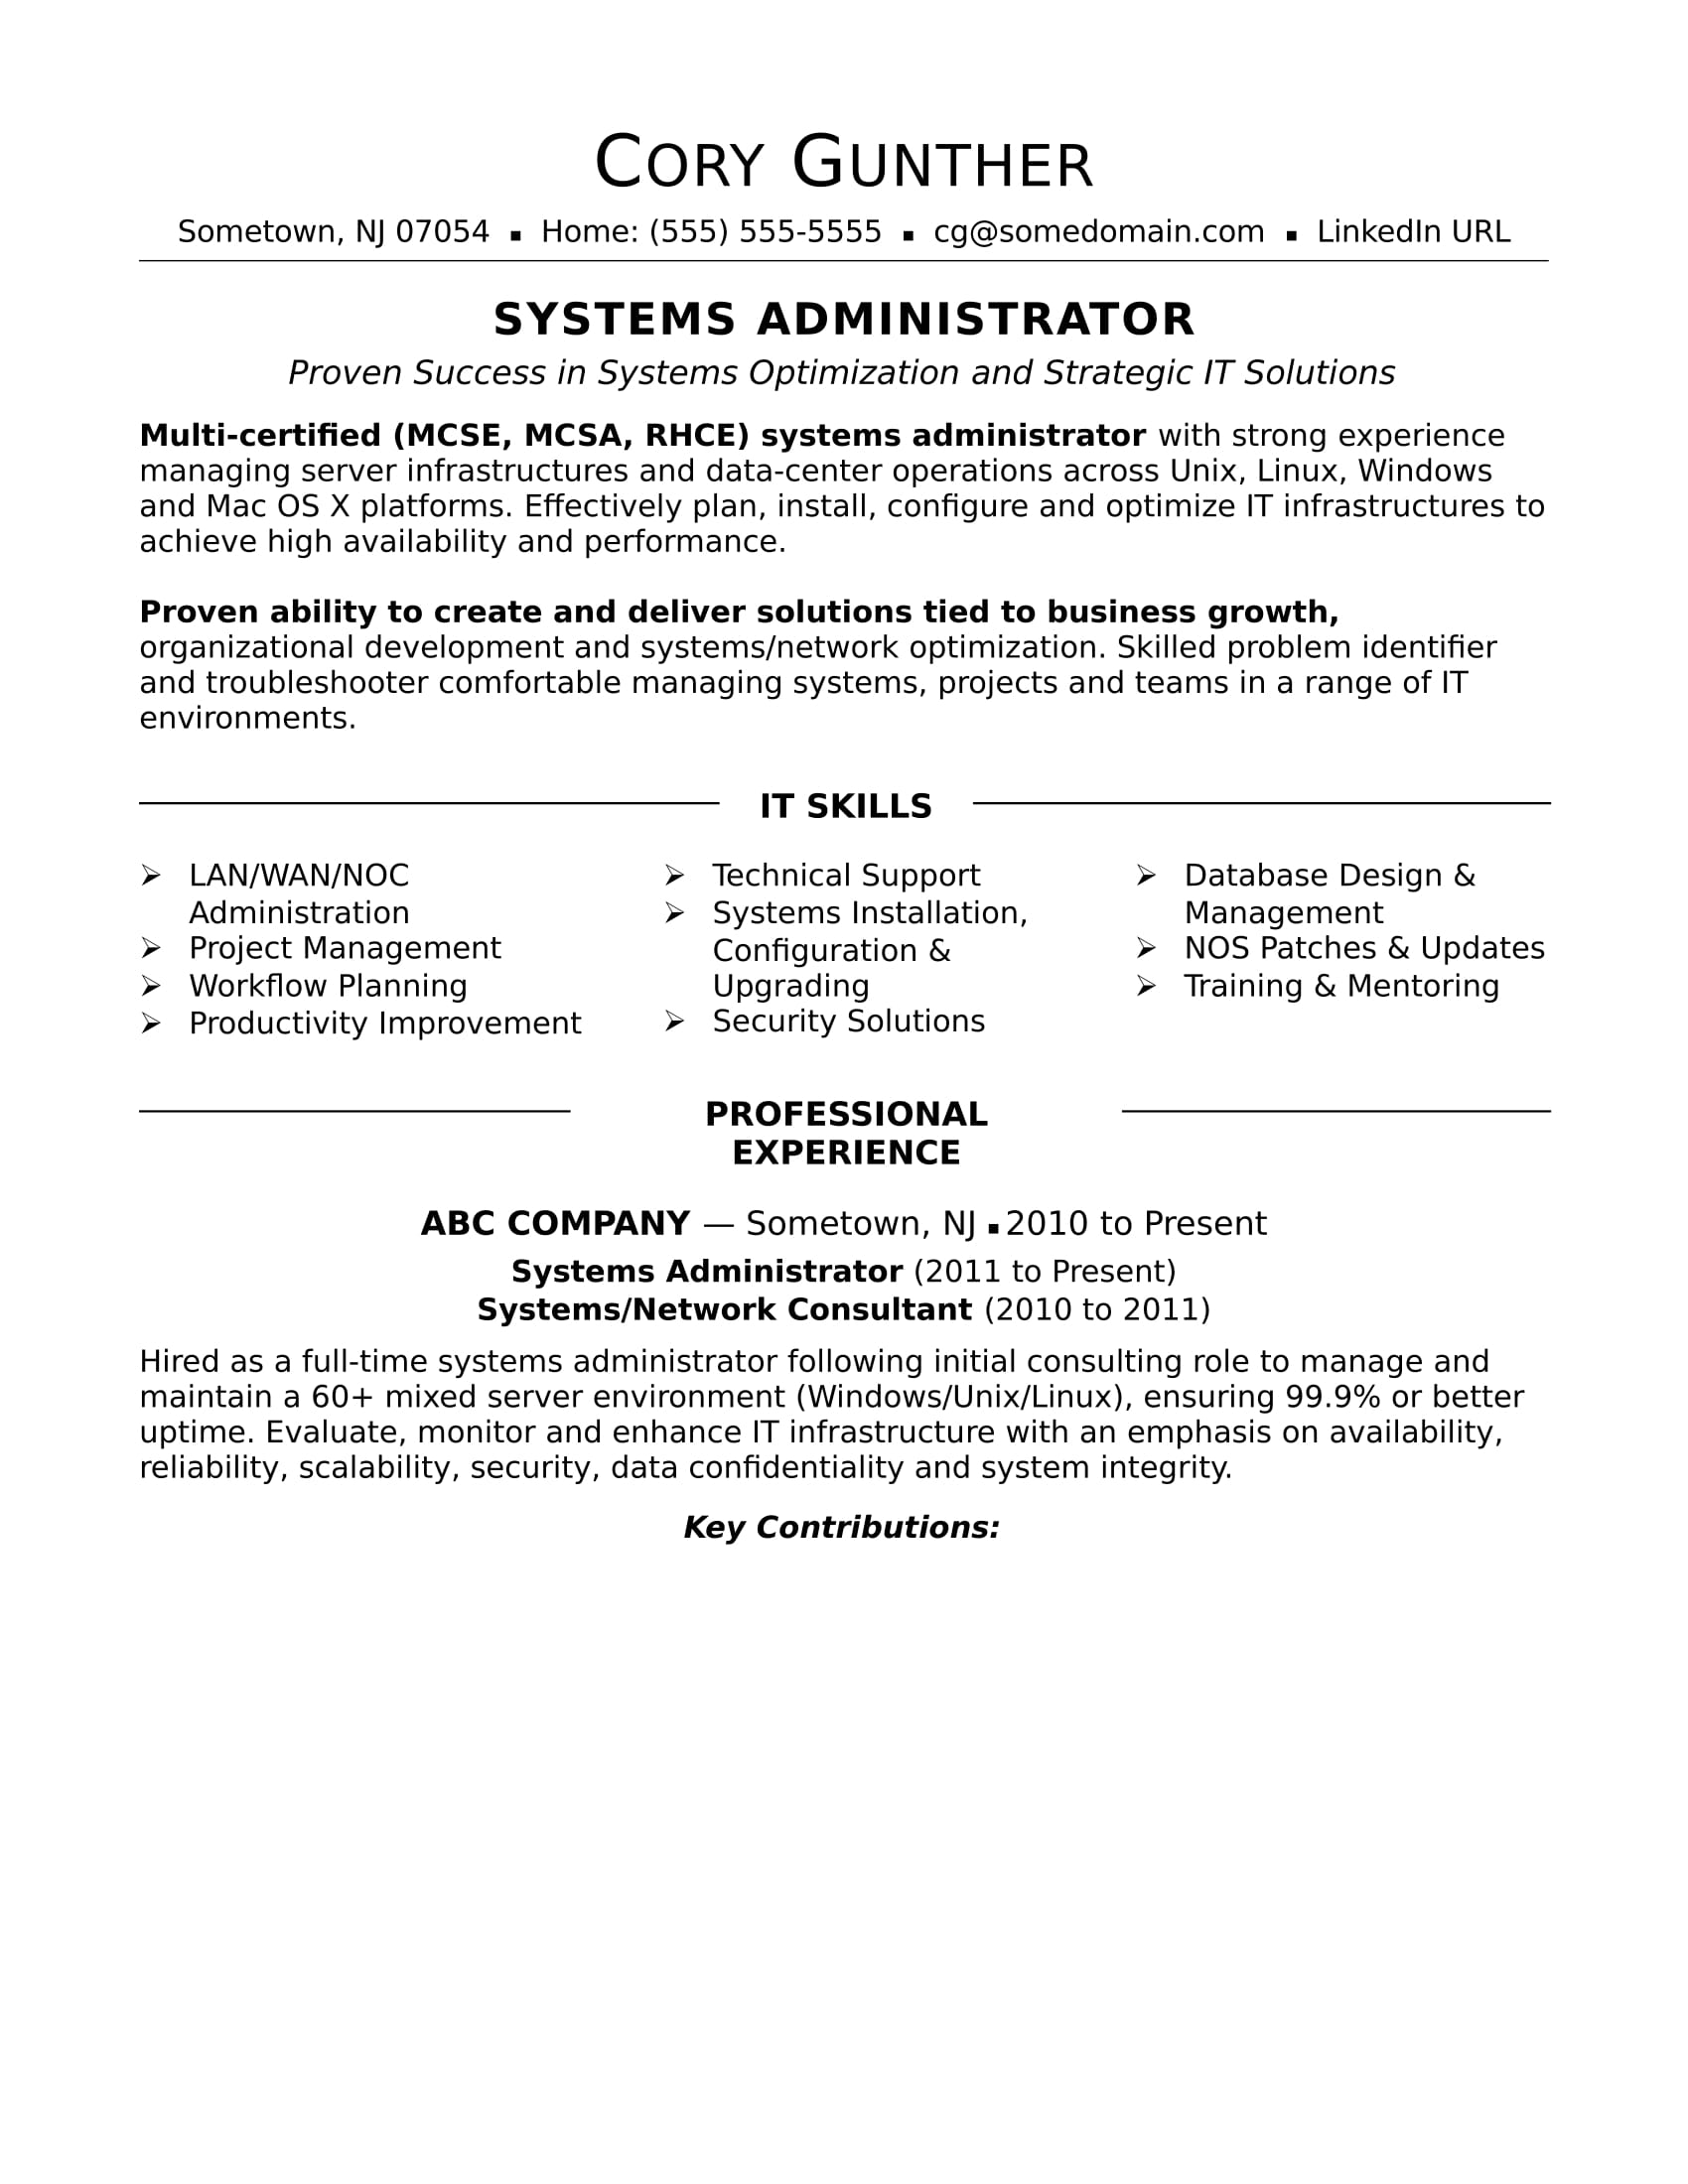 sample resume for an experienced systems administrator monster system objective Resume System Administrator Resume Objective